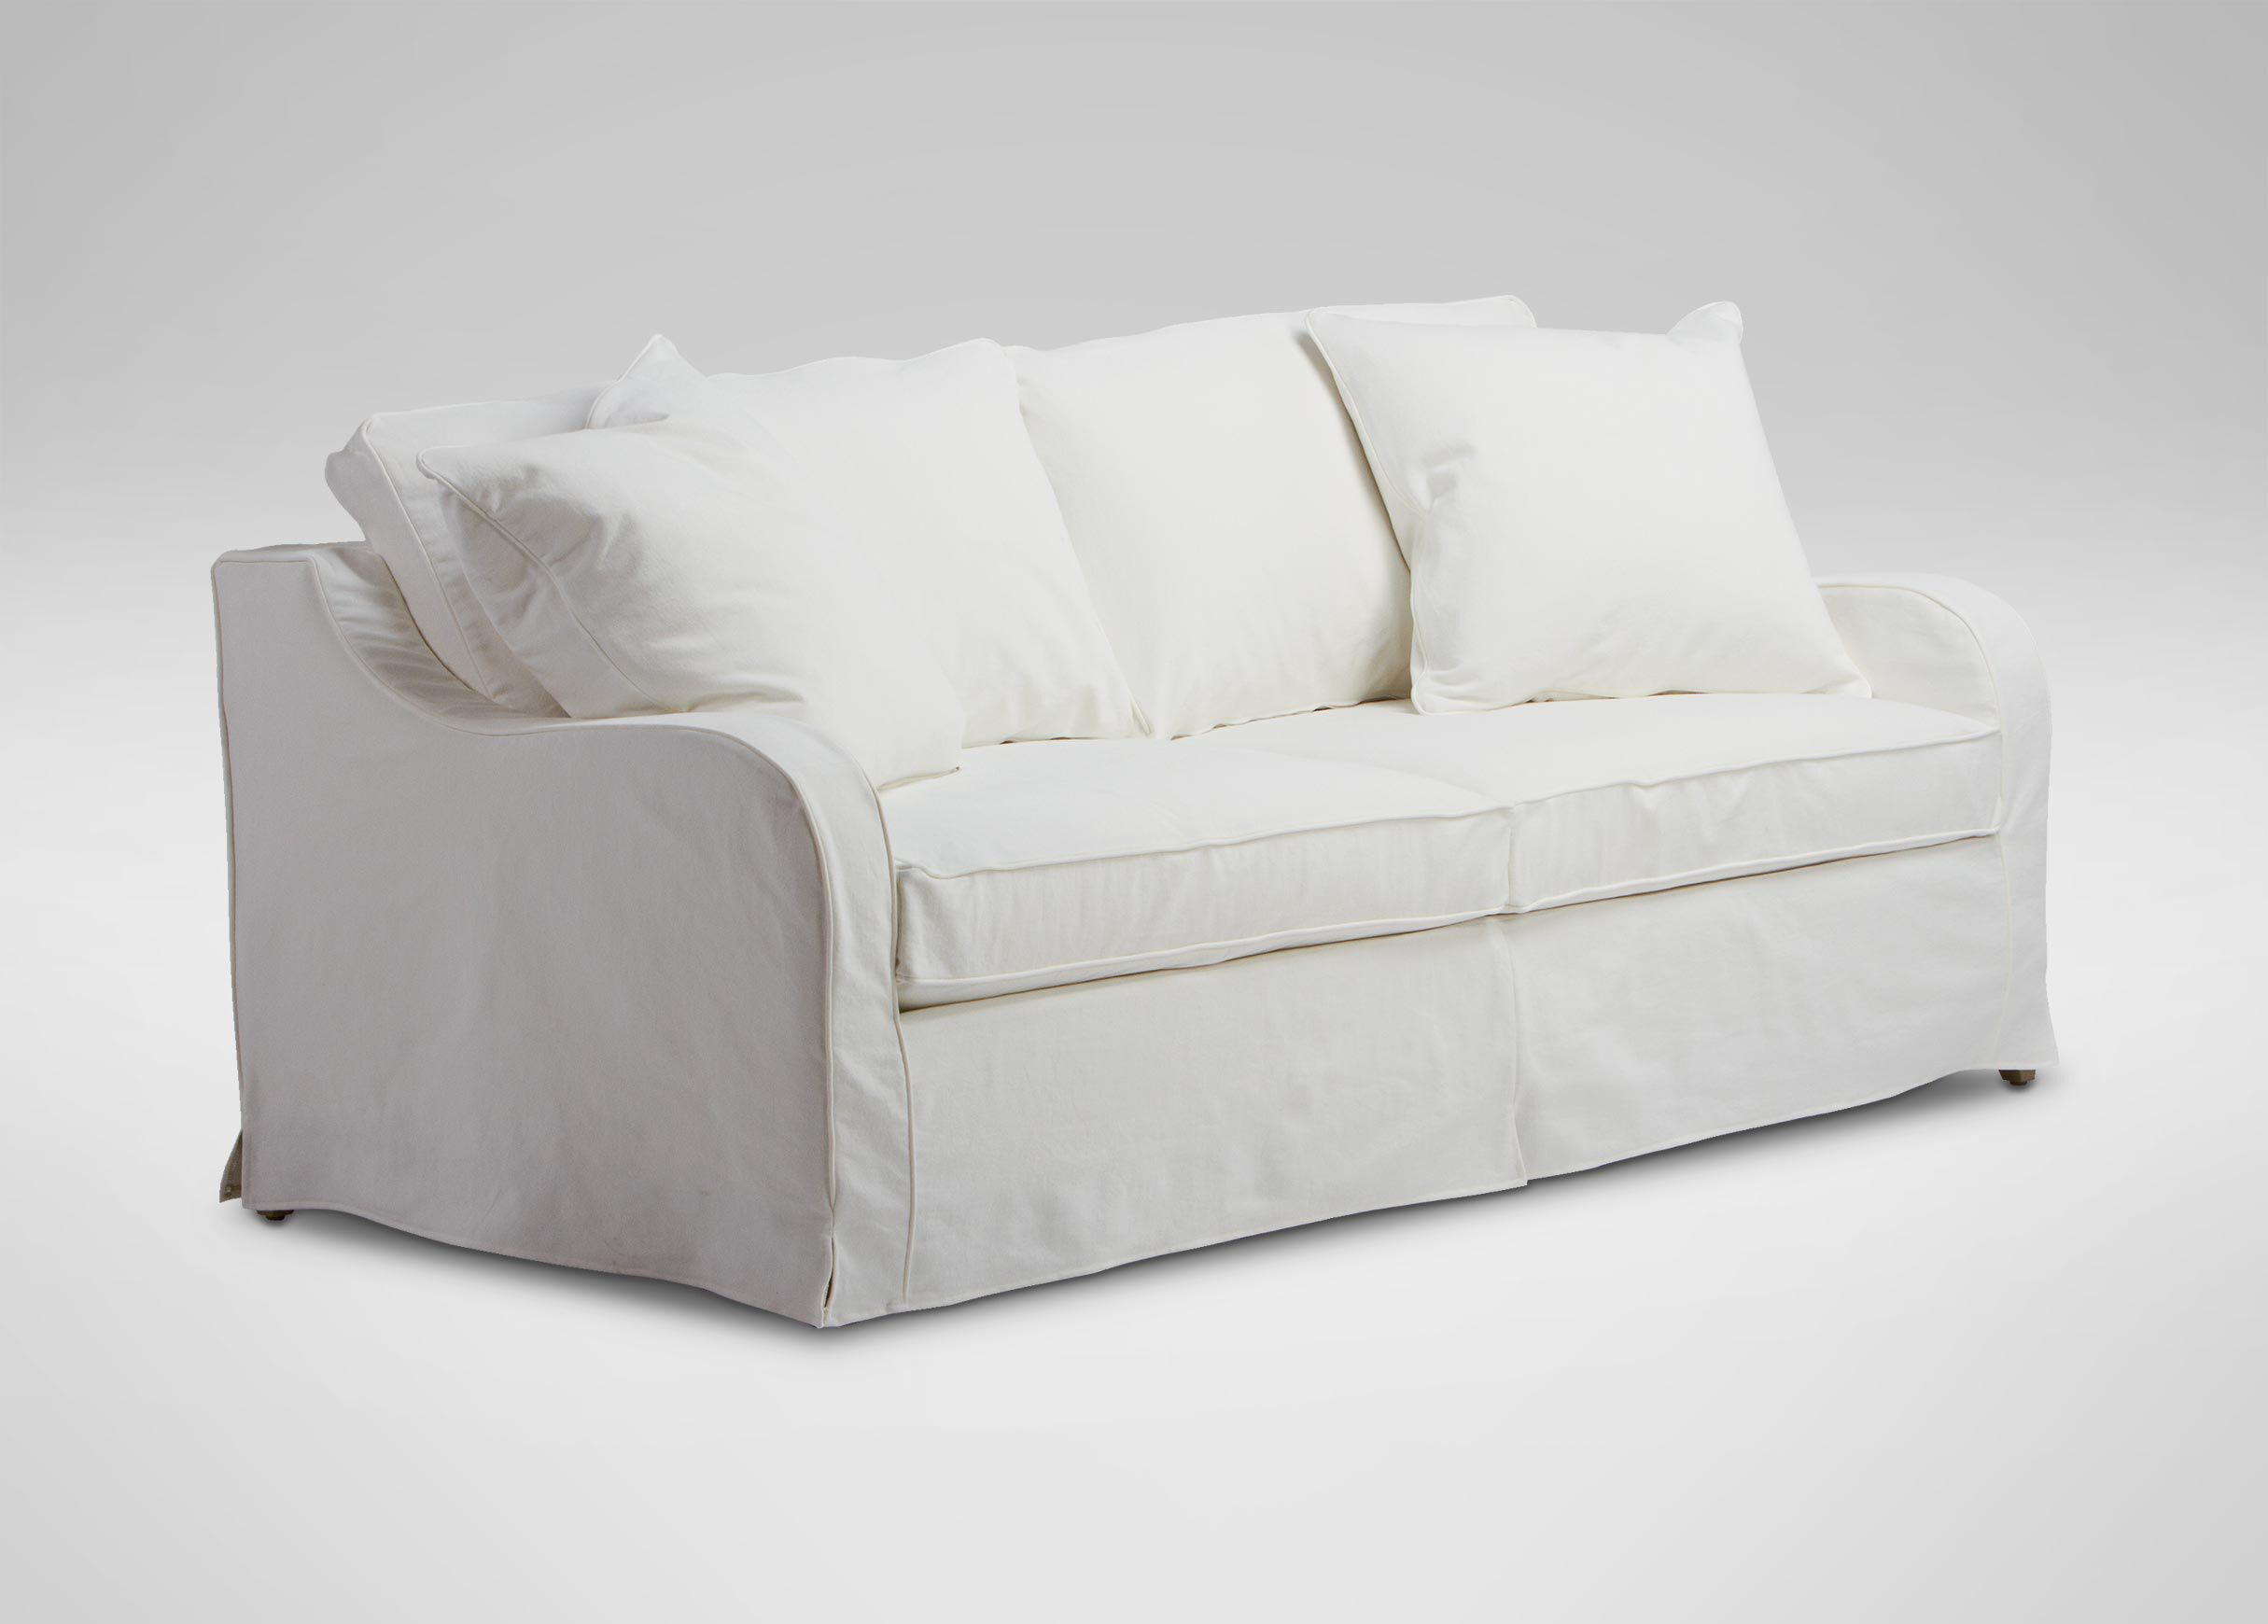 arm slipcovered seaside keep a sofa roll best to slipcover beautifully how clean white english